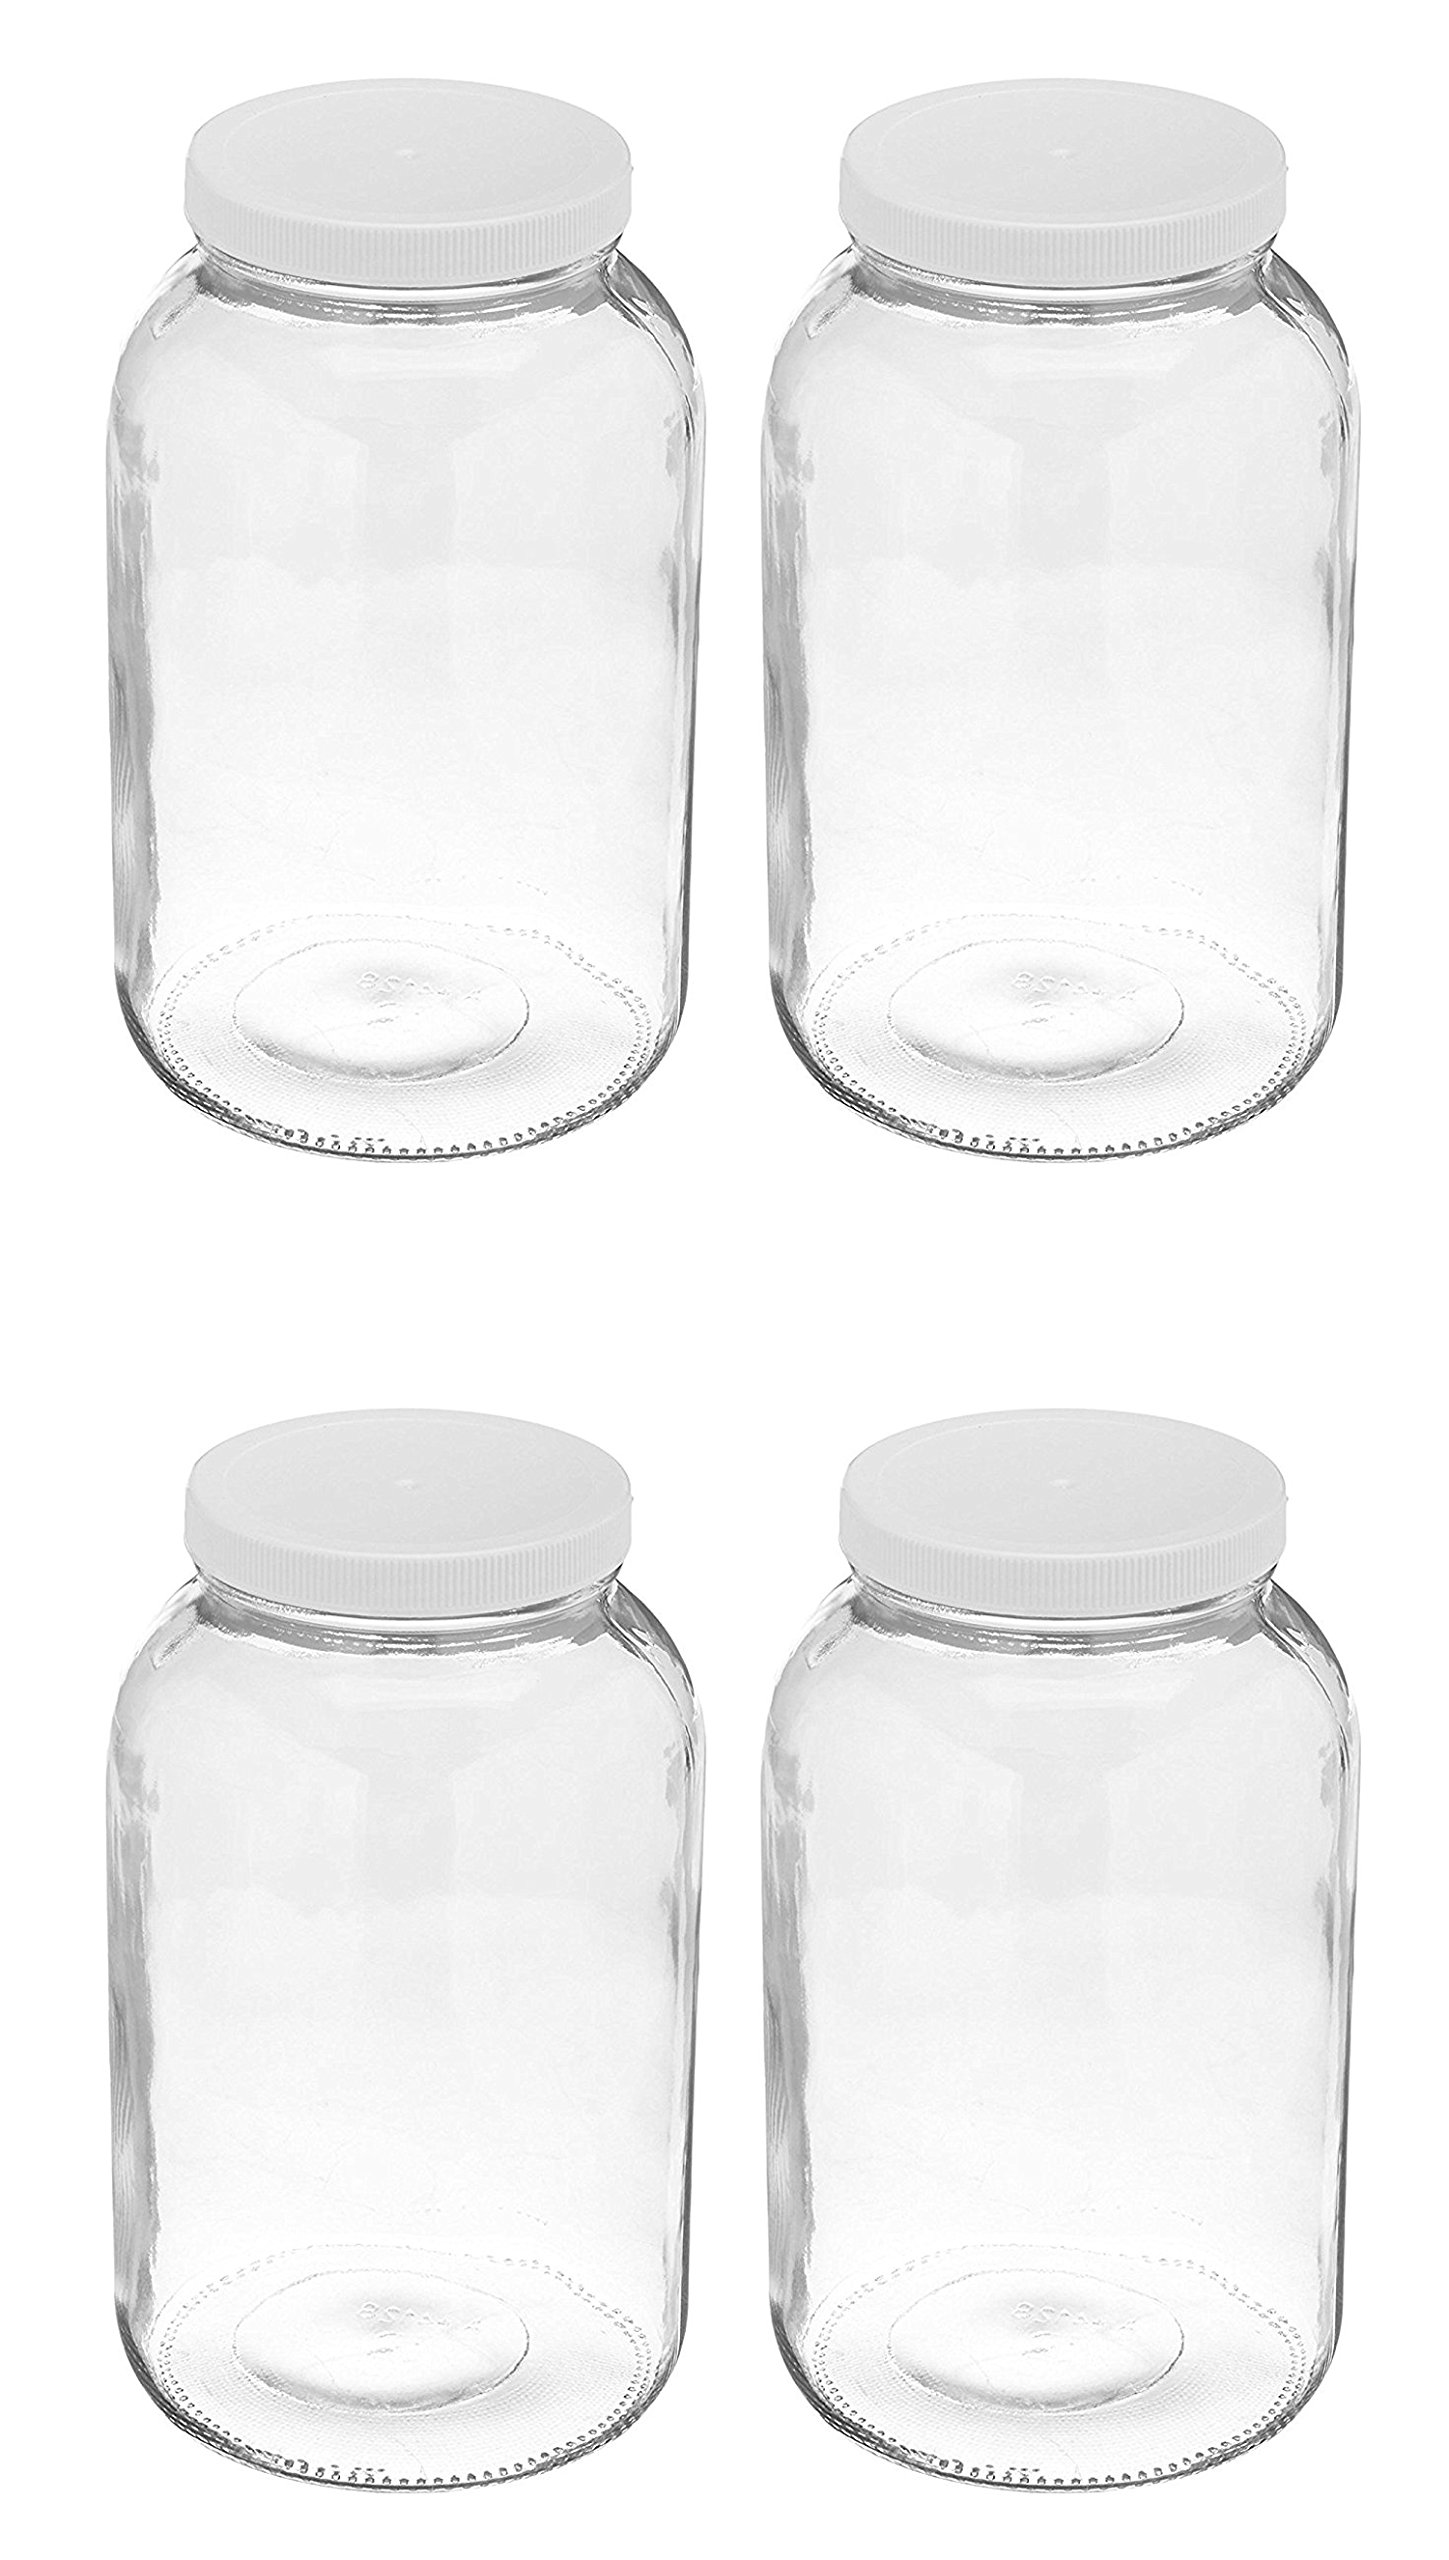 4 Pack ~ Wide Mouth 1 Gallon Clear Glass Jar - White Lid with Liner Seal for Fermenting Kombucha / Storing and Canning / USDA Approved, Dishwasher Safe by Arkansas Glass (Image #1)